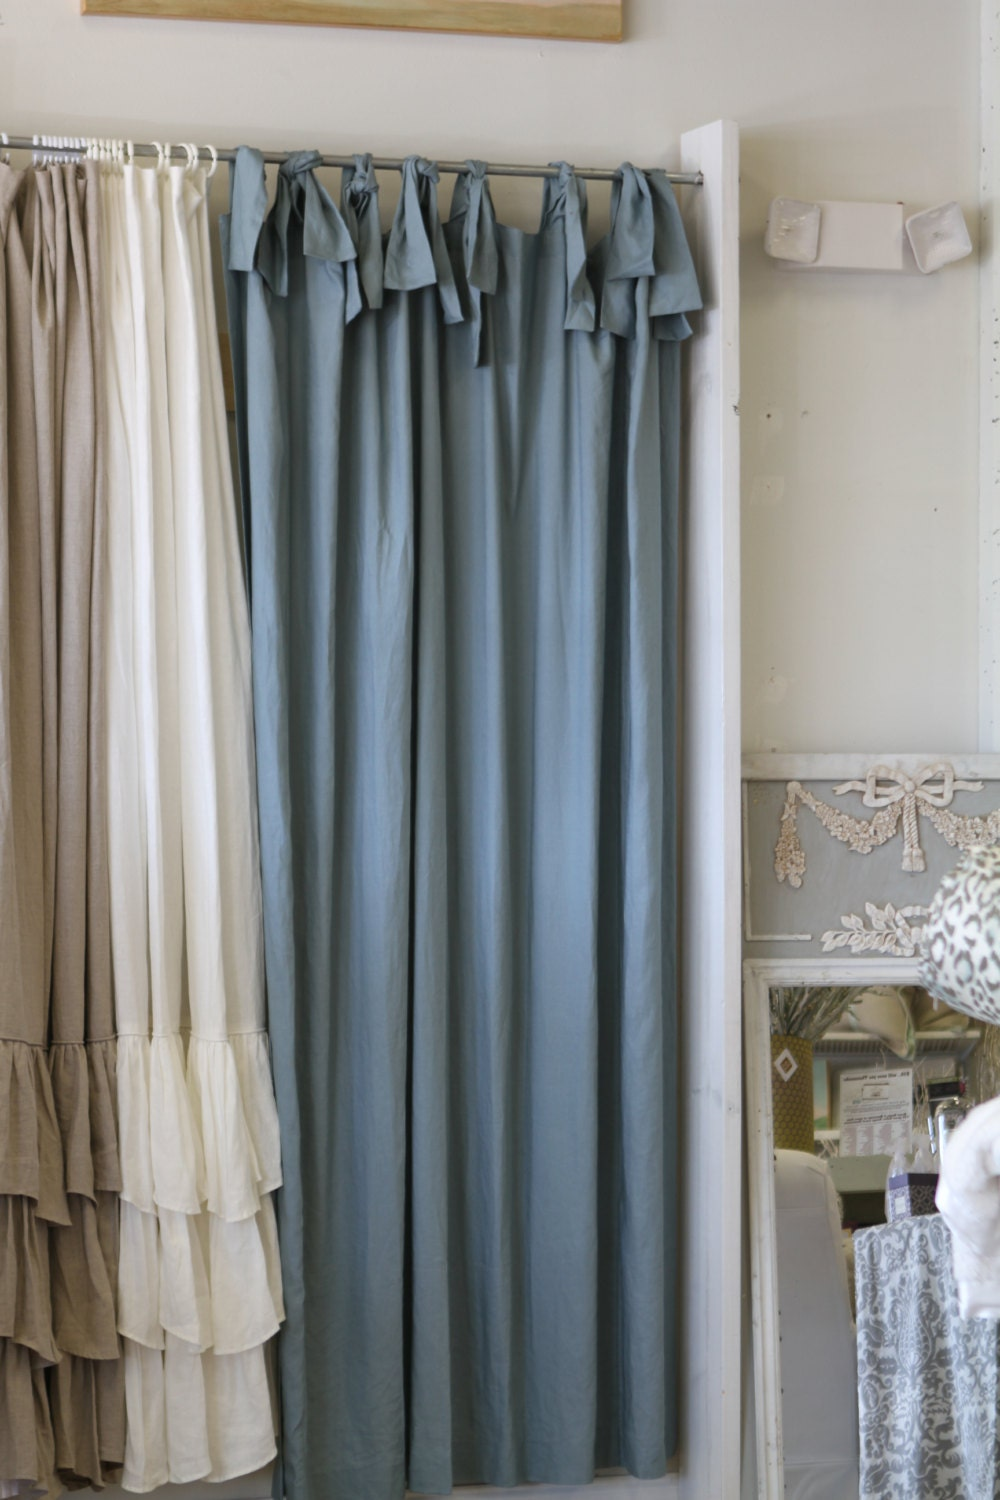 74x96 Asw Shower Curtain With Ties Blue Linen By Ldlinens